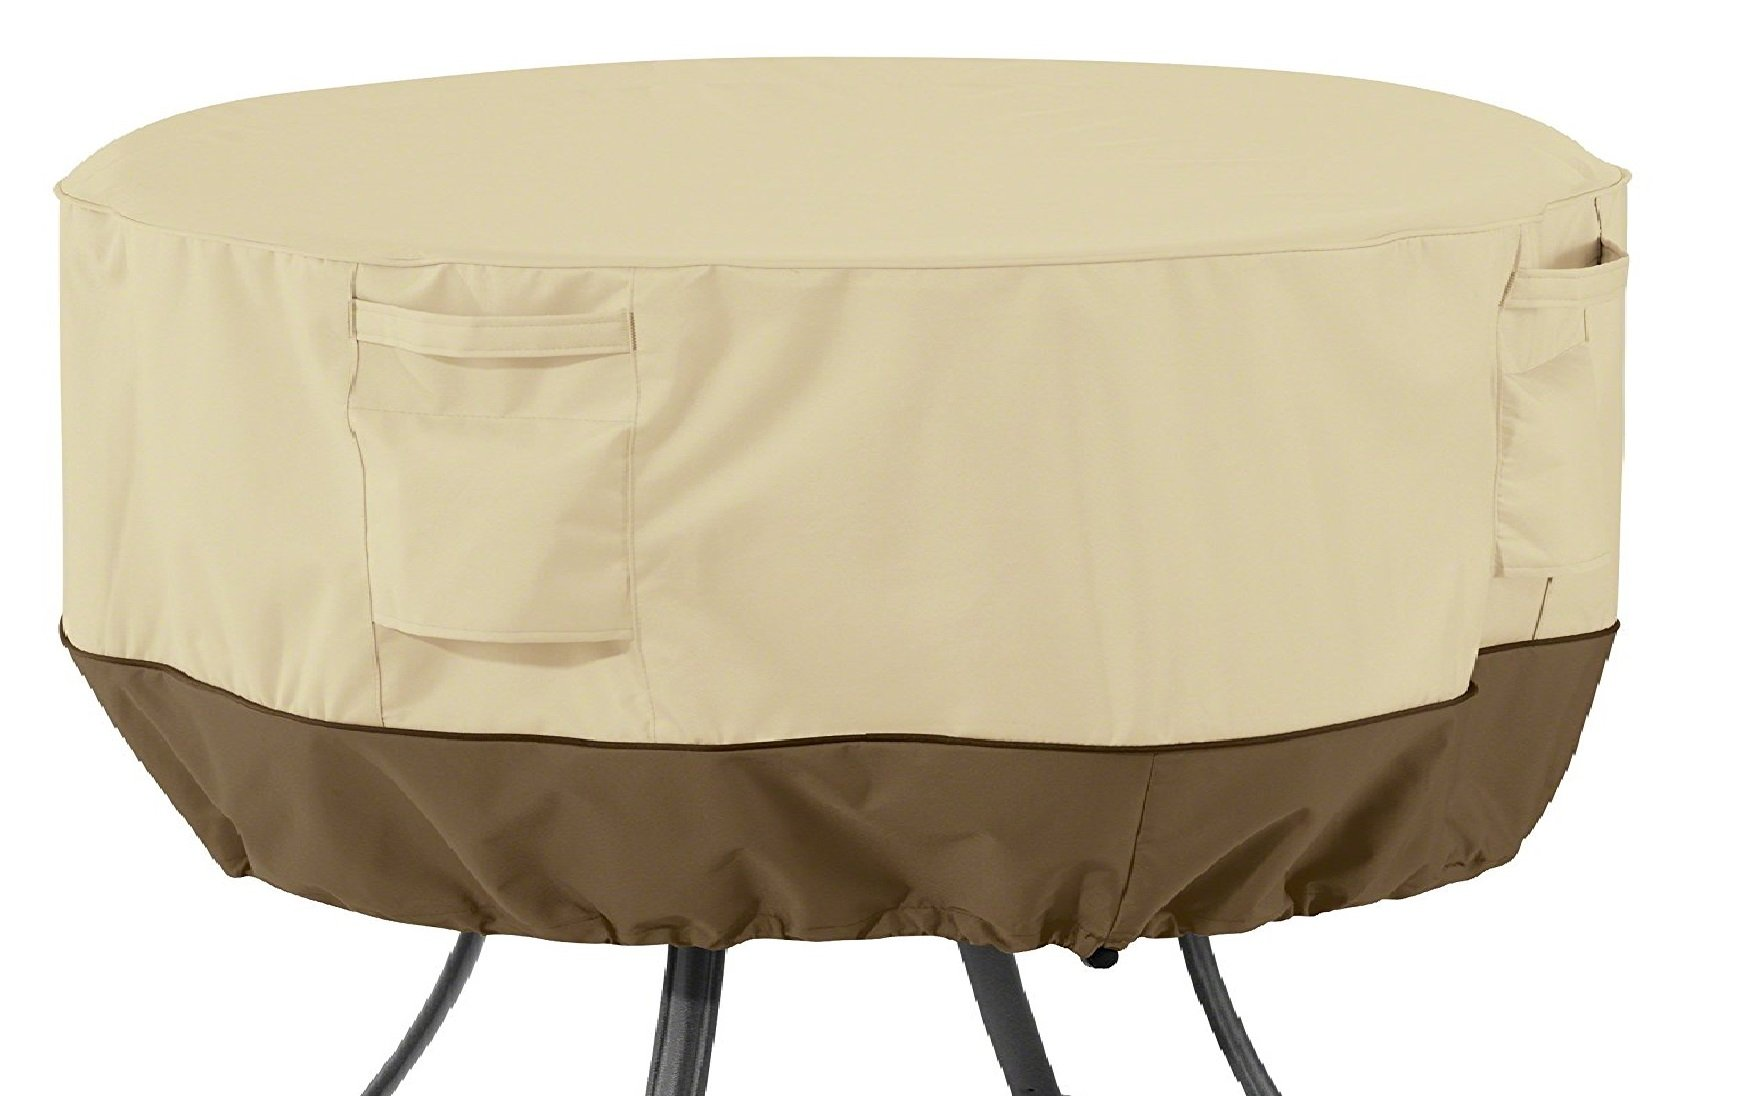 Classic Accessories Veranda Round Patio Table Cover, Large by Classic Accessories